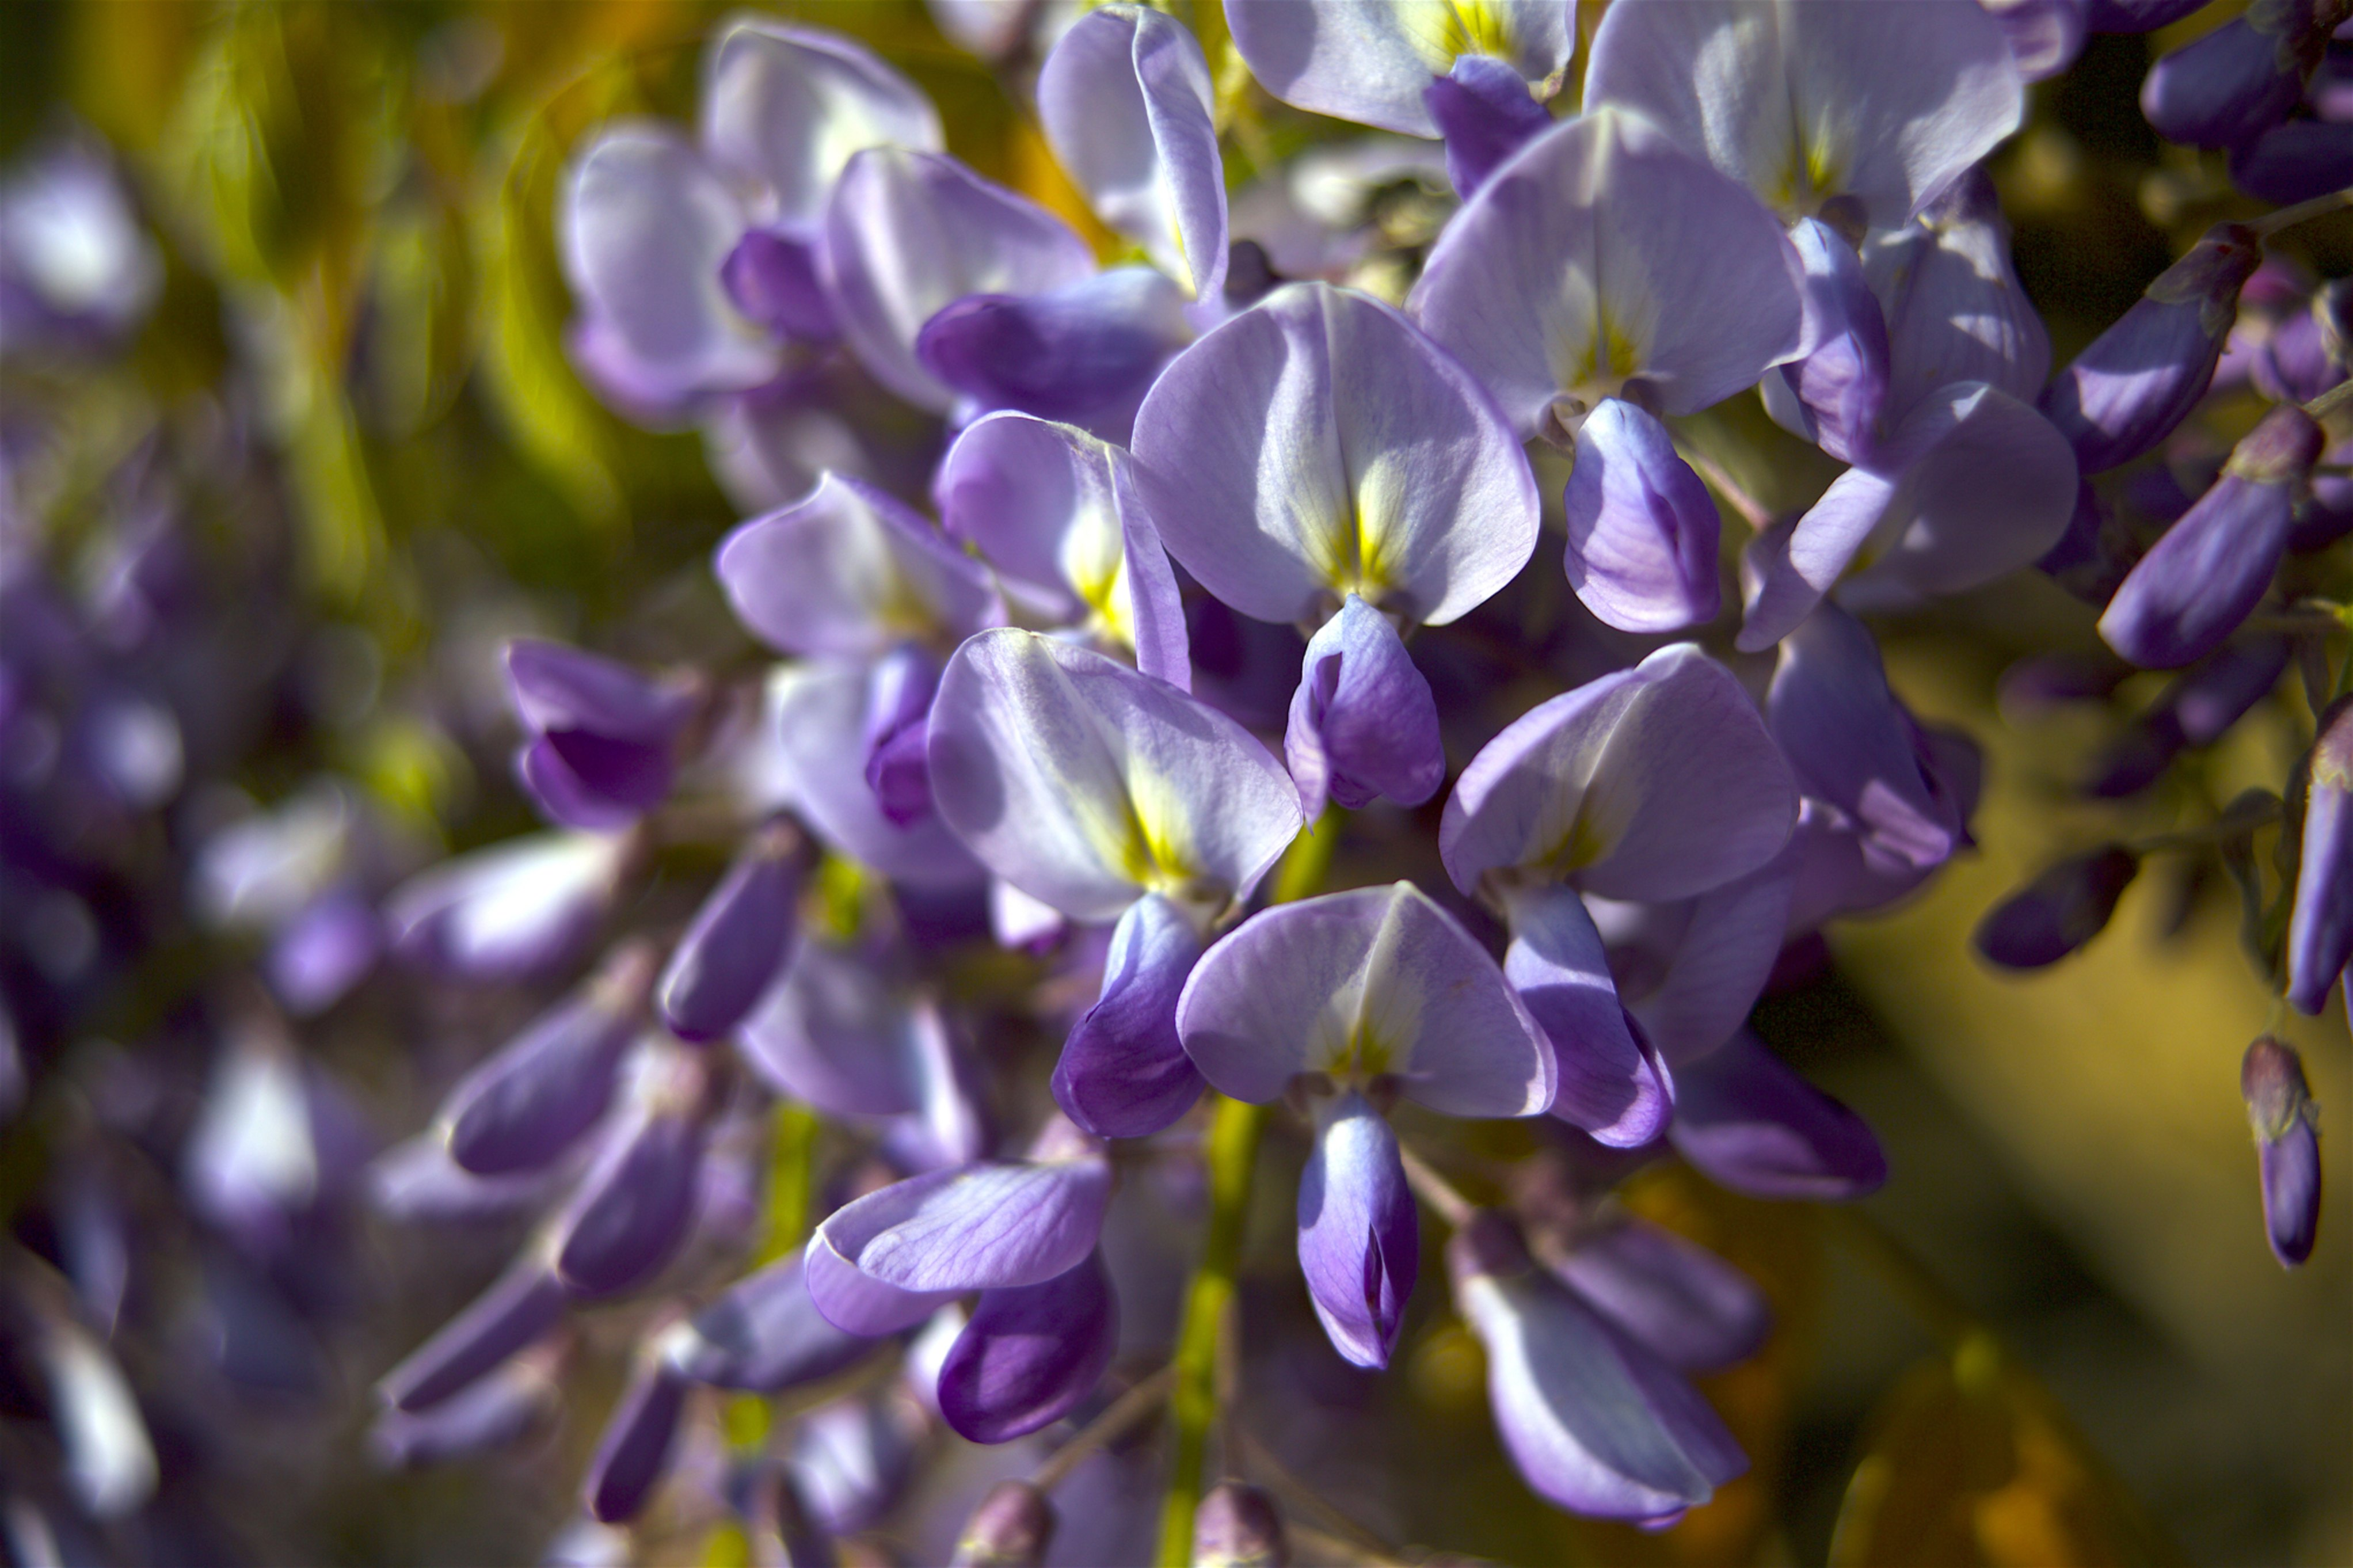 Wisteria at Kew